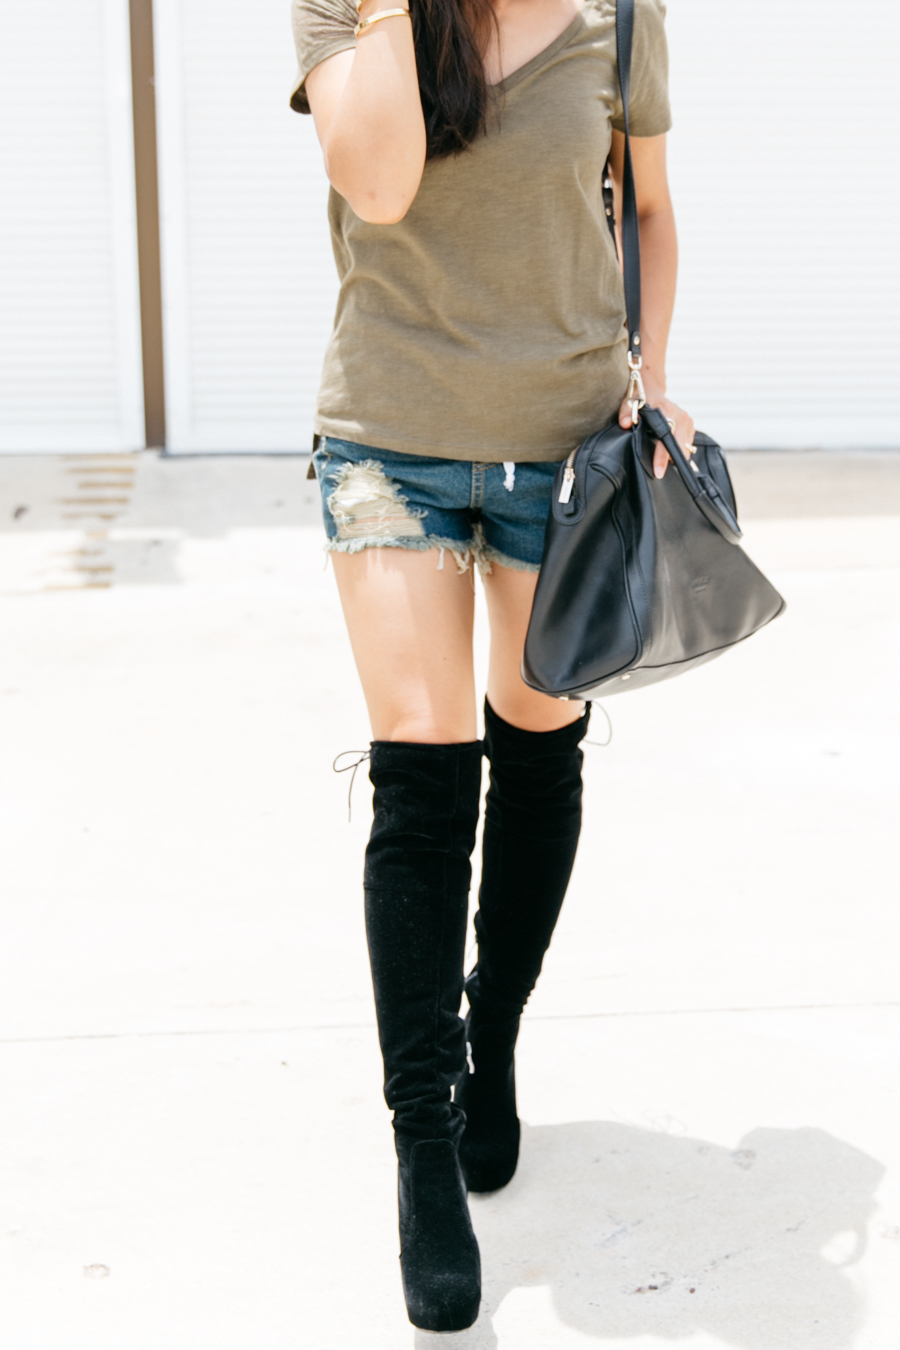 Black suede over the knee boots with denim shorts & a khaki tee.